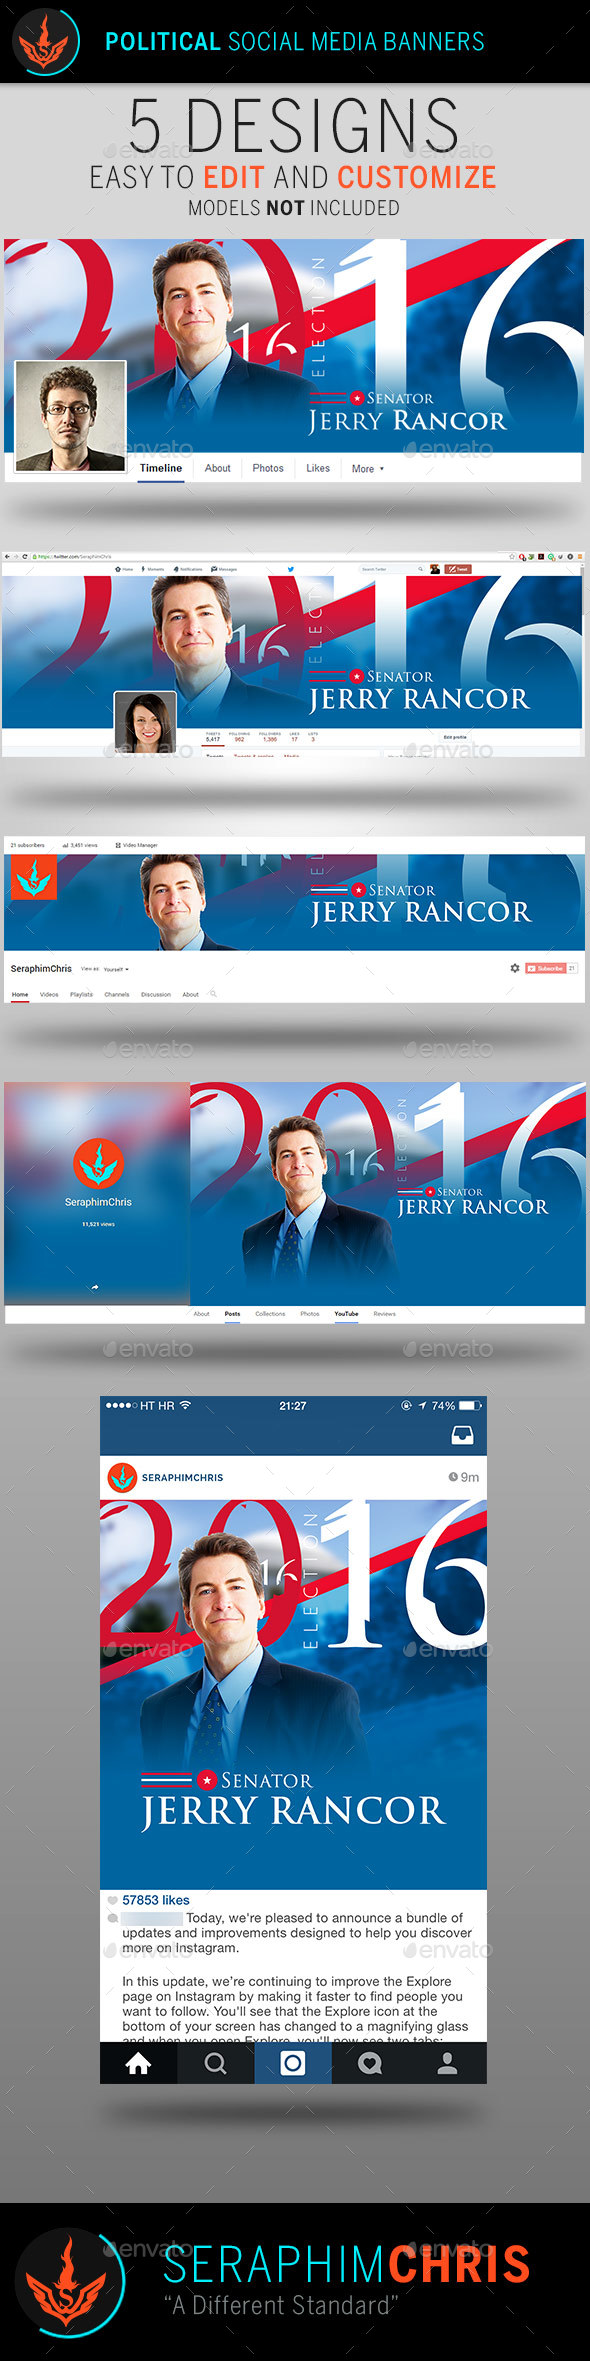 Political Election Social Media Banner Templates By Seraphimchris